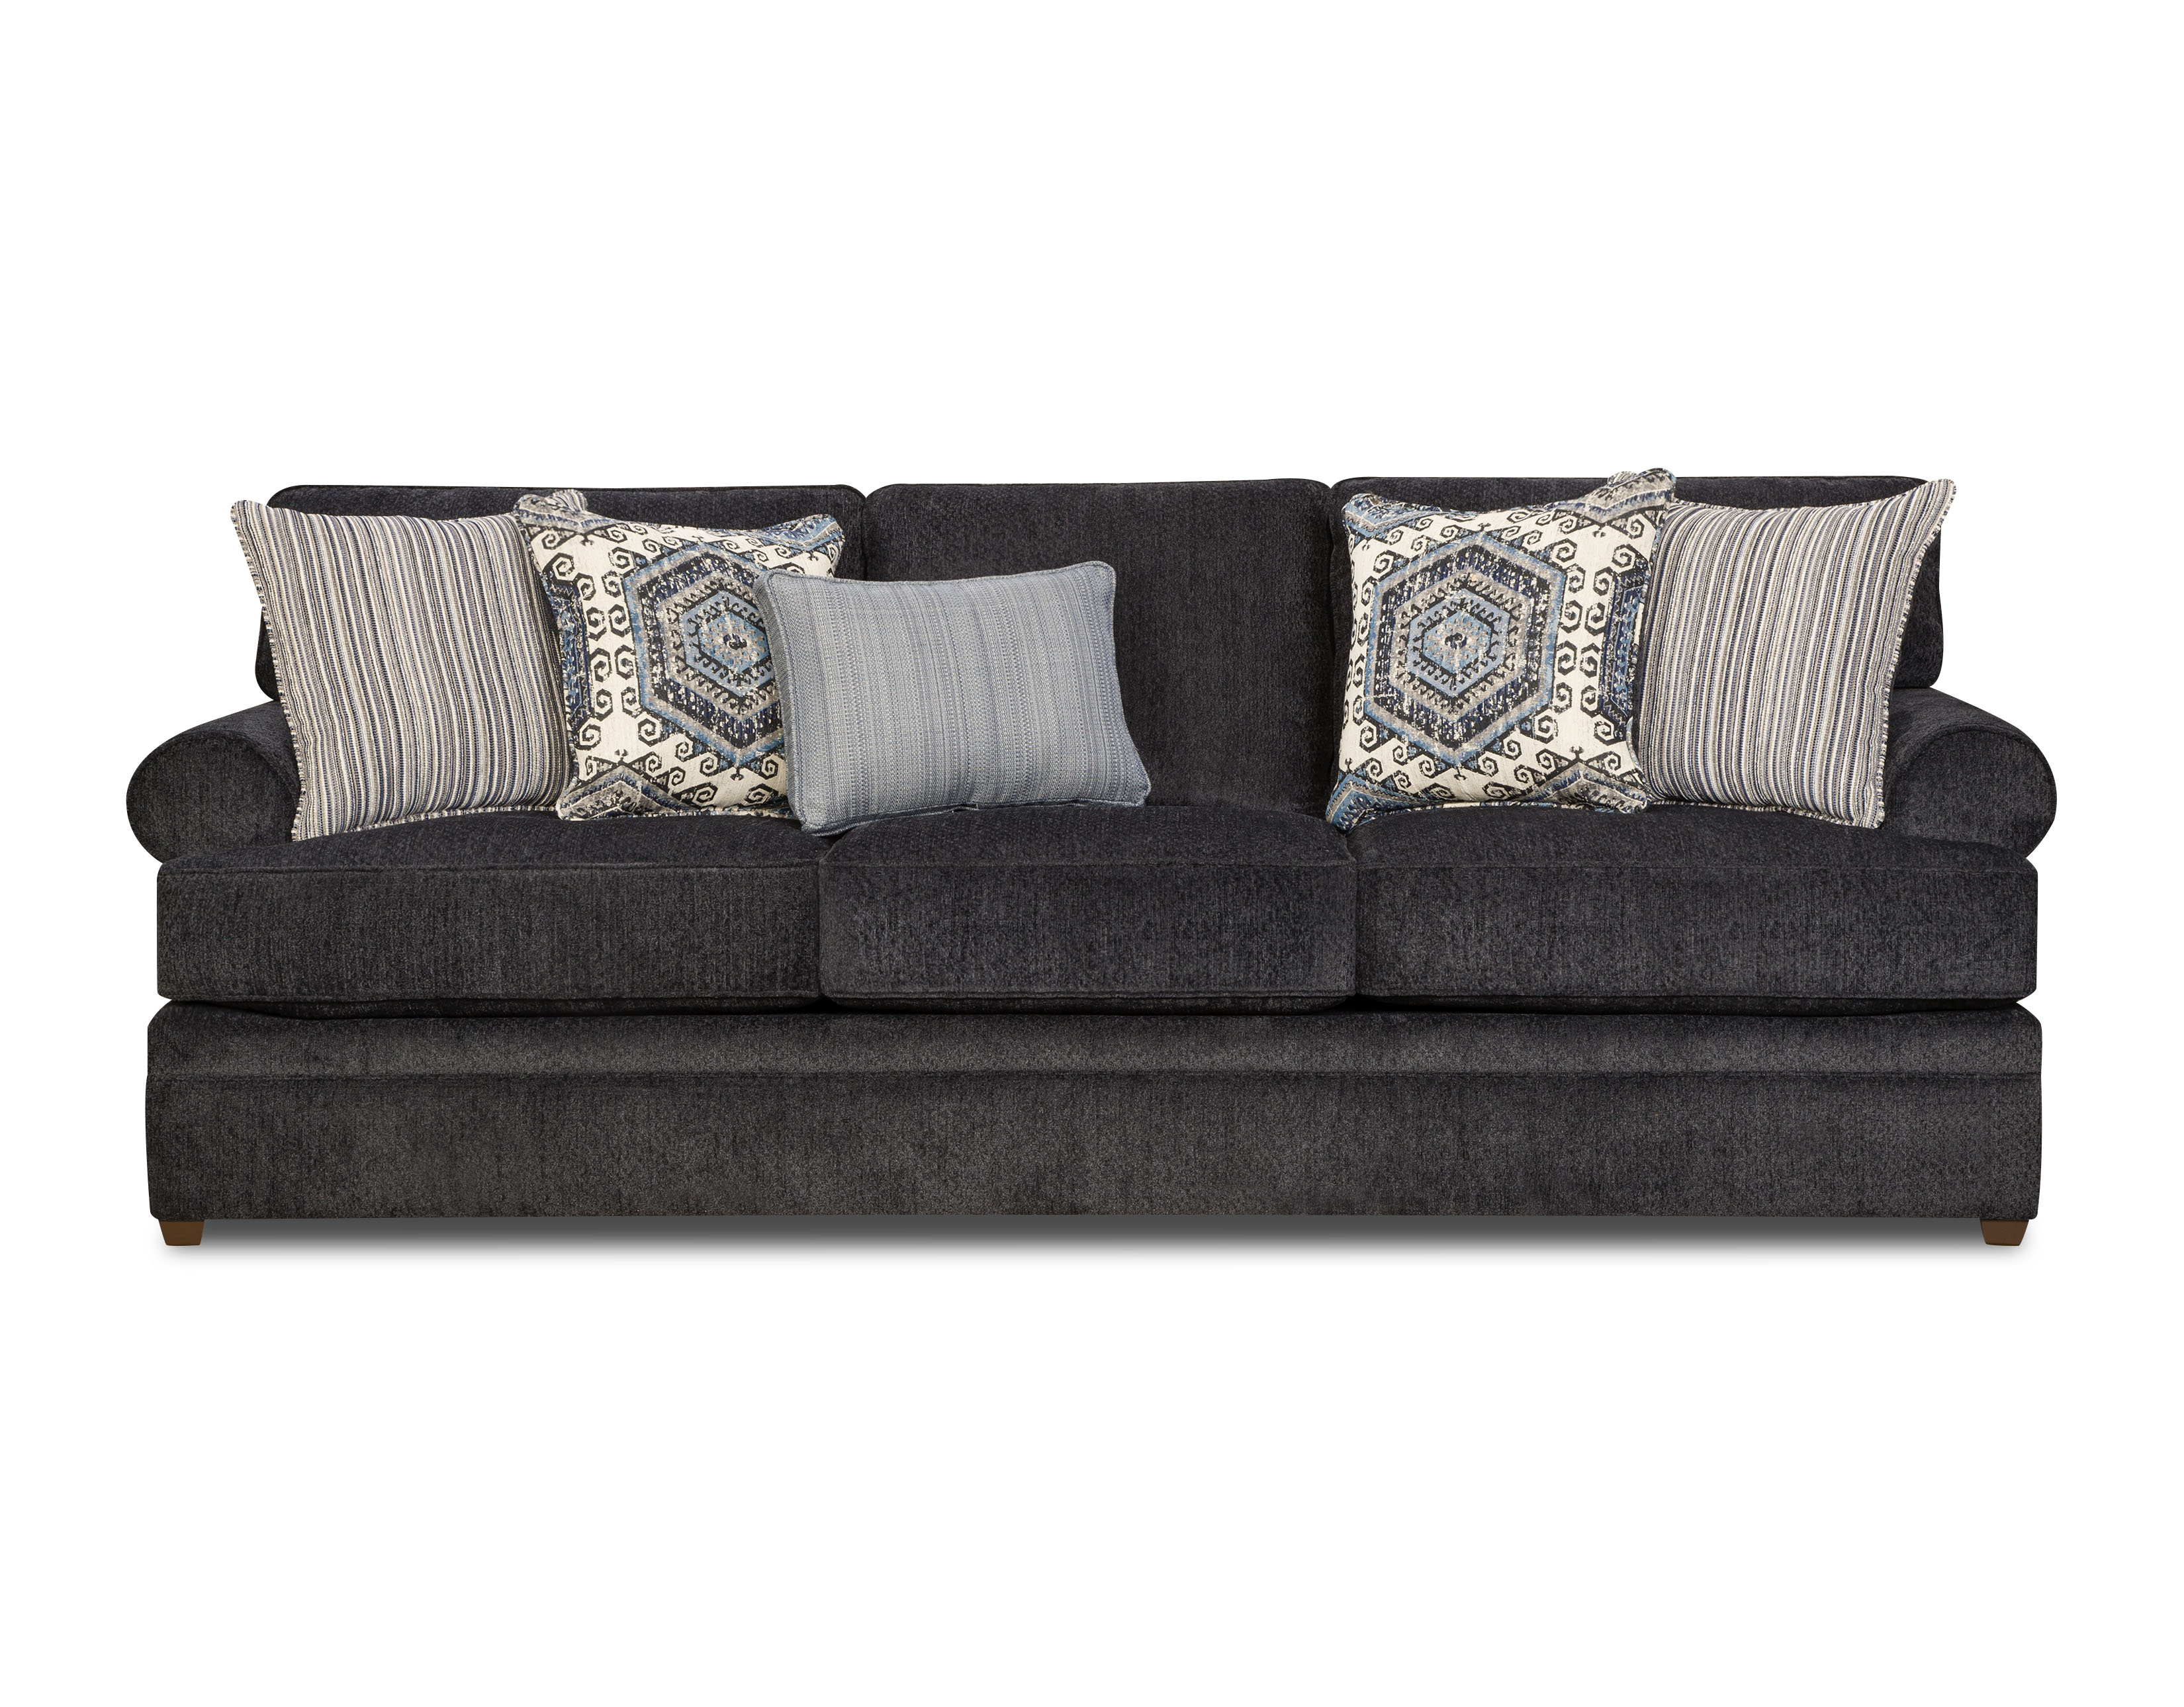 sears clearwater sofa sectional tribeca dimensions sofas simmons bentley motion bingo brown your